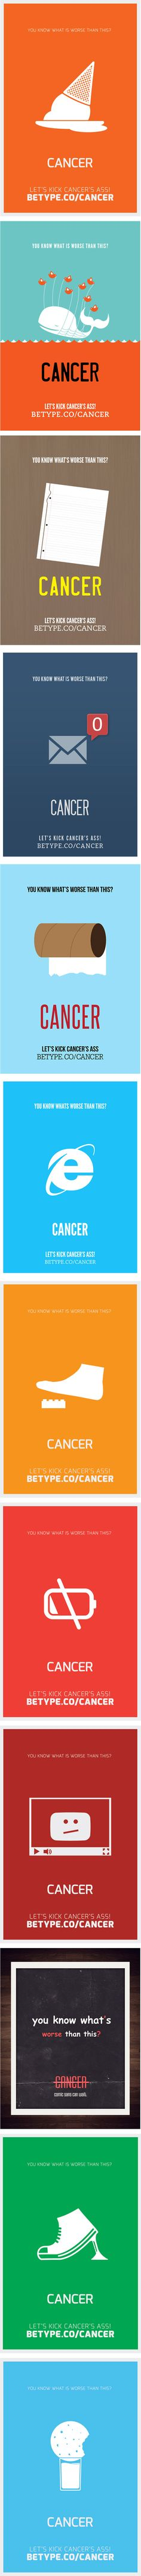 Cancer et humour. et oui cest possible ! Graphic Design Print, Graphic Design Branding, Ad Design, Graphic Design Inspiration, Print Ads, Poster Prints, Cancer Humor, Print Packaging, Print Layout